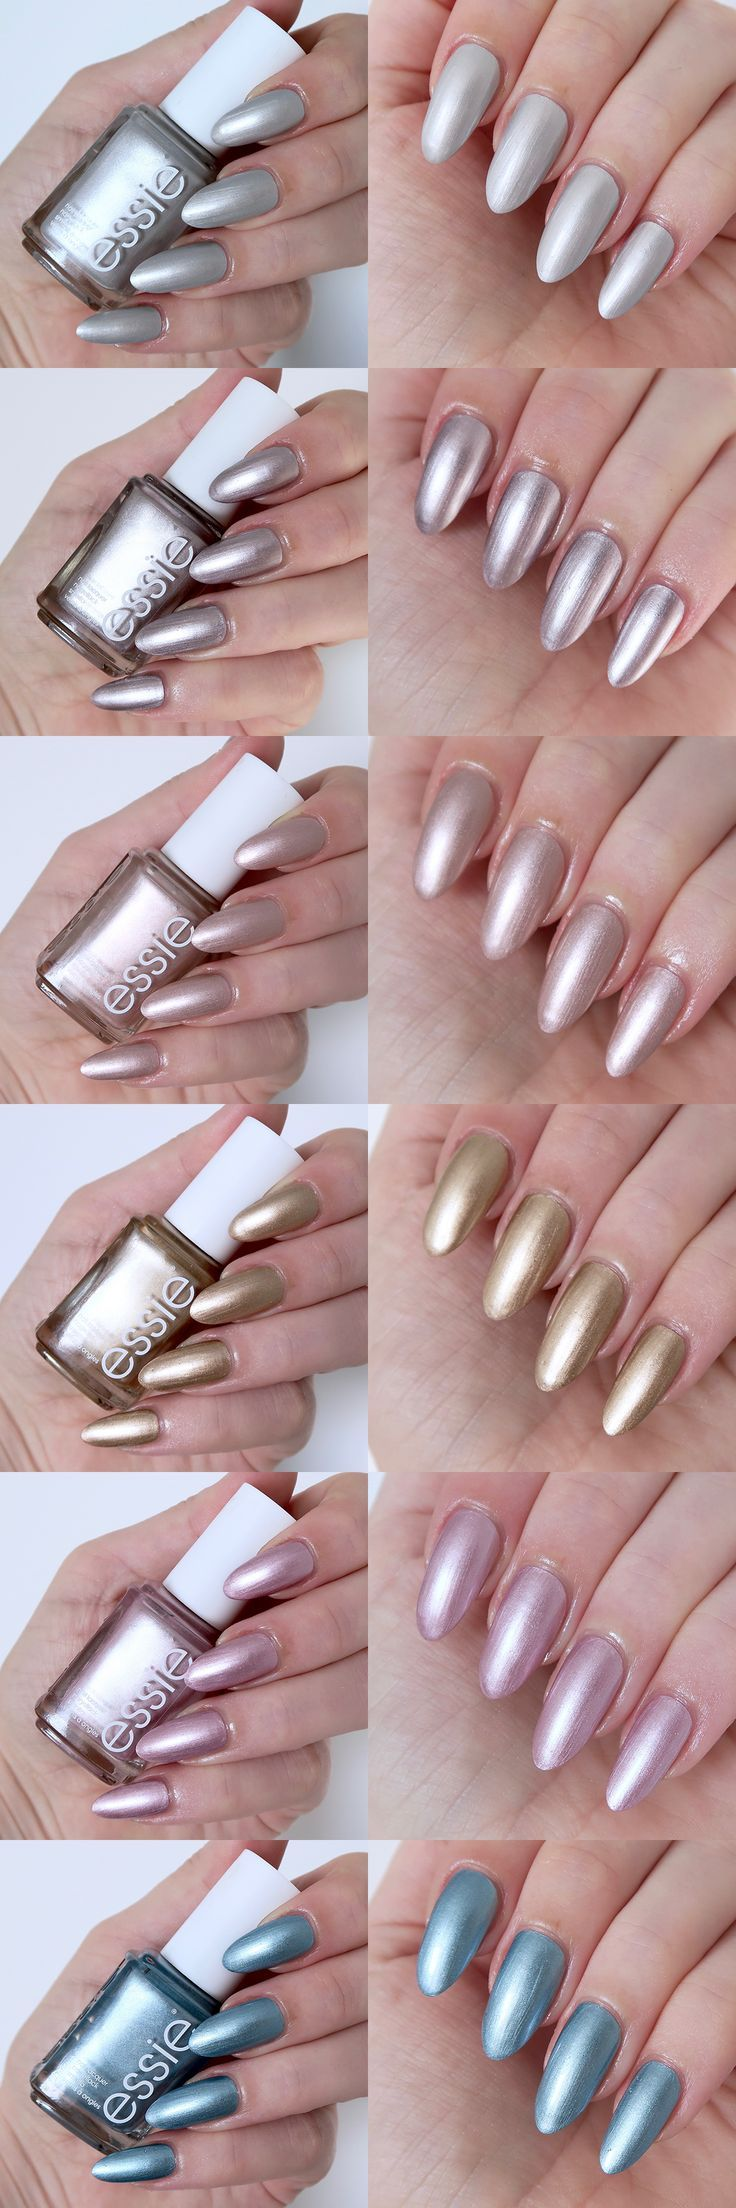 Essie Galaxy Metals collection review, metallic nails | Nails ...